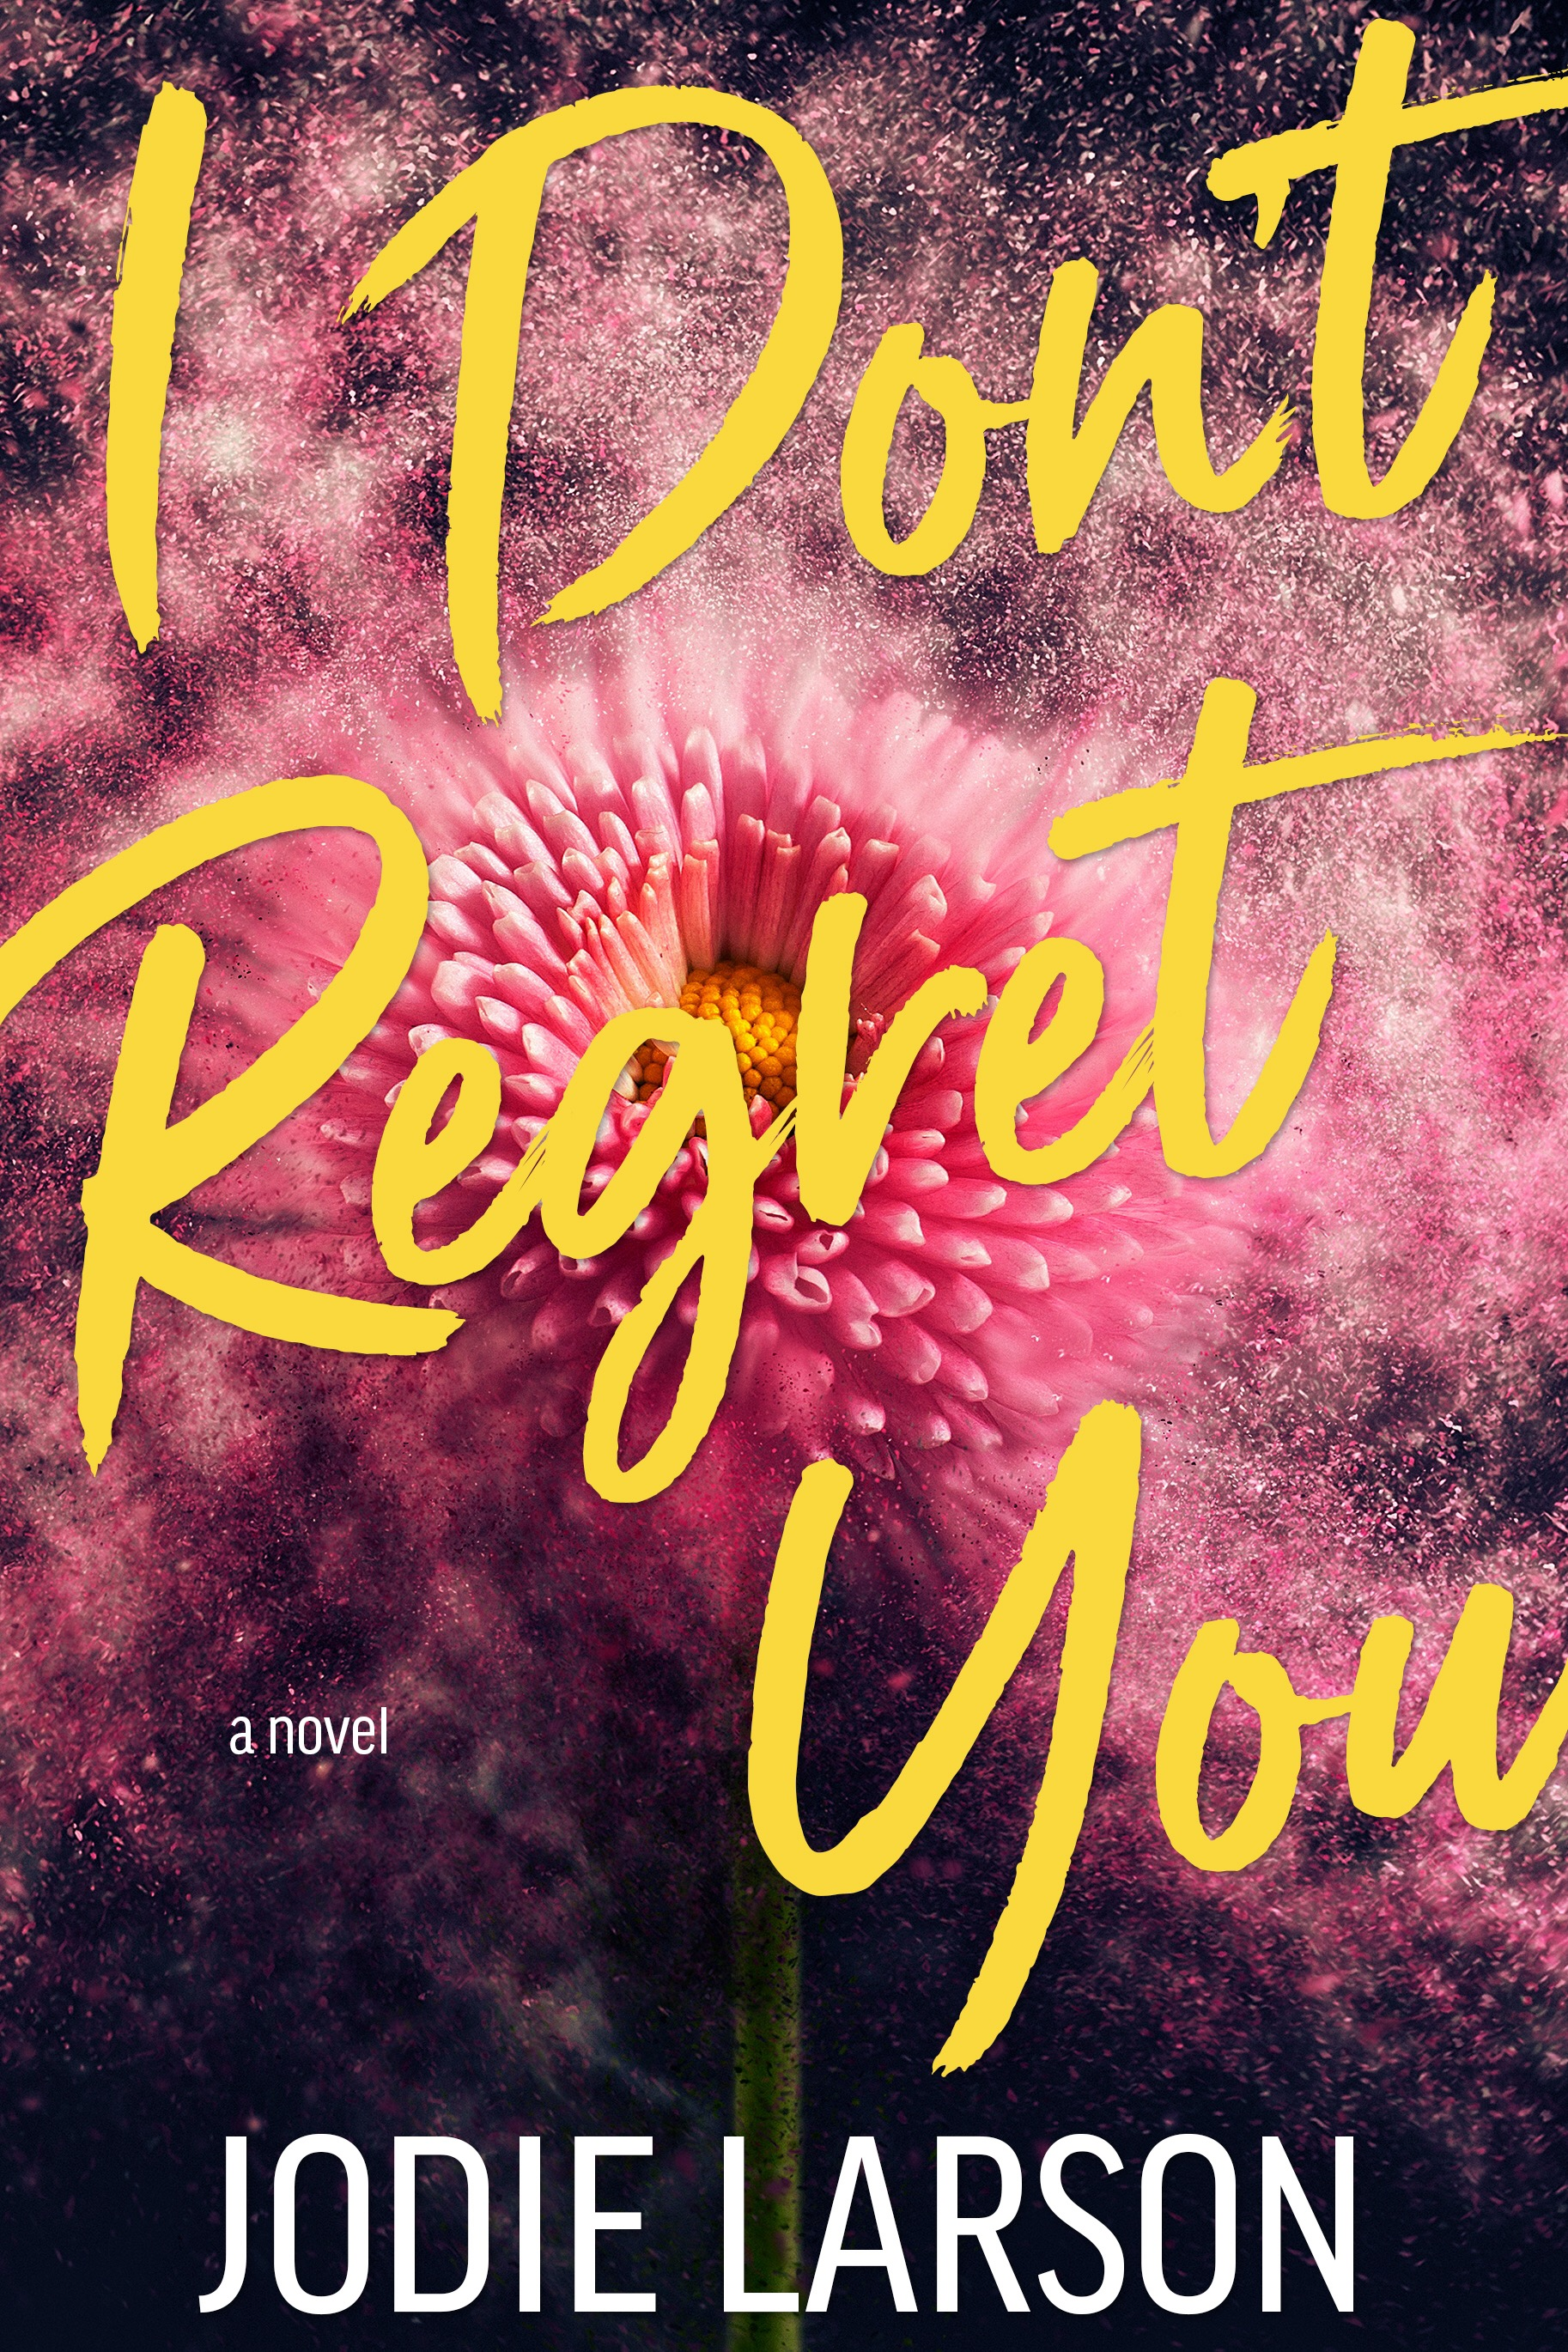 I DON'T REGRET YOU by Jodie Larson